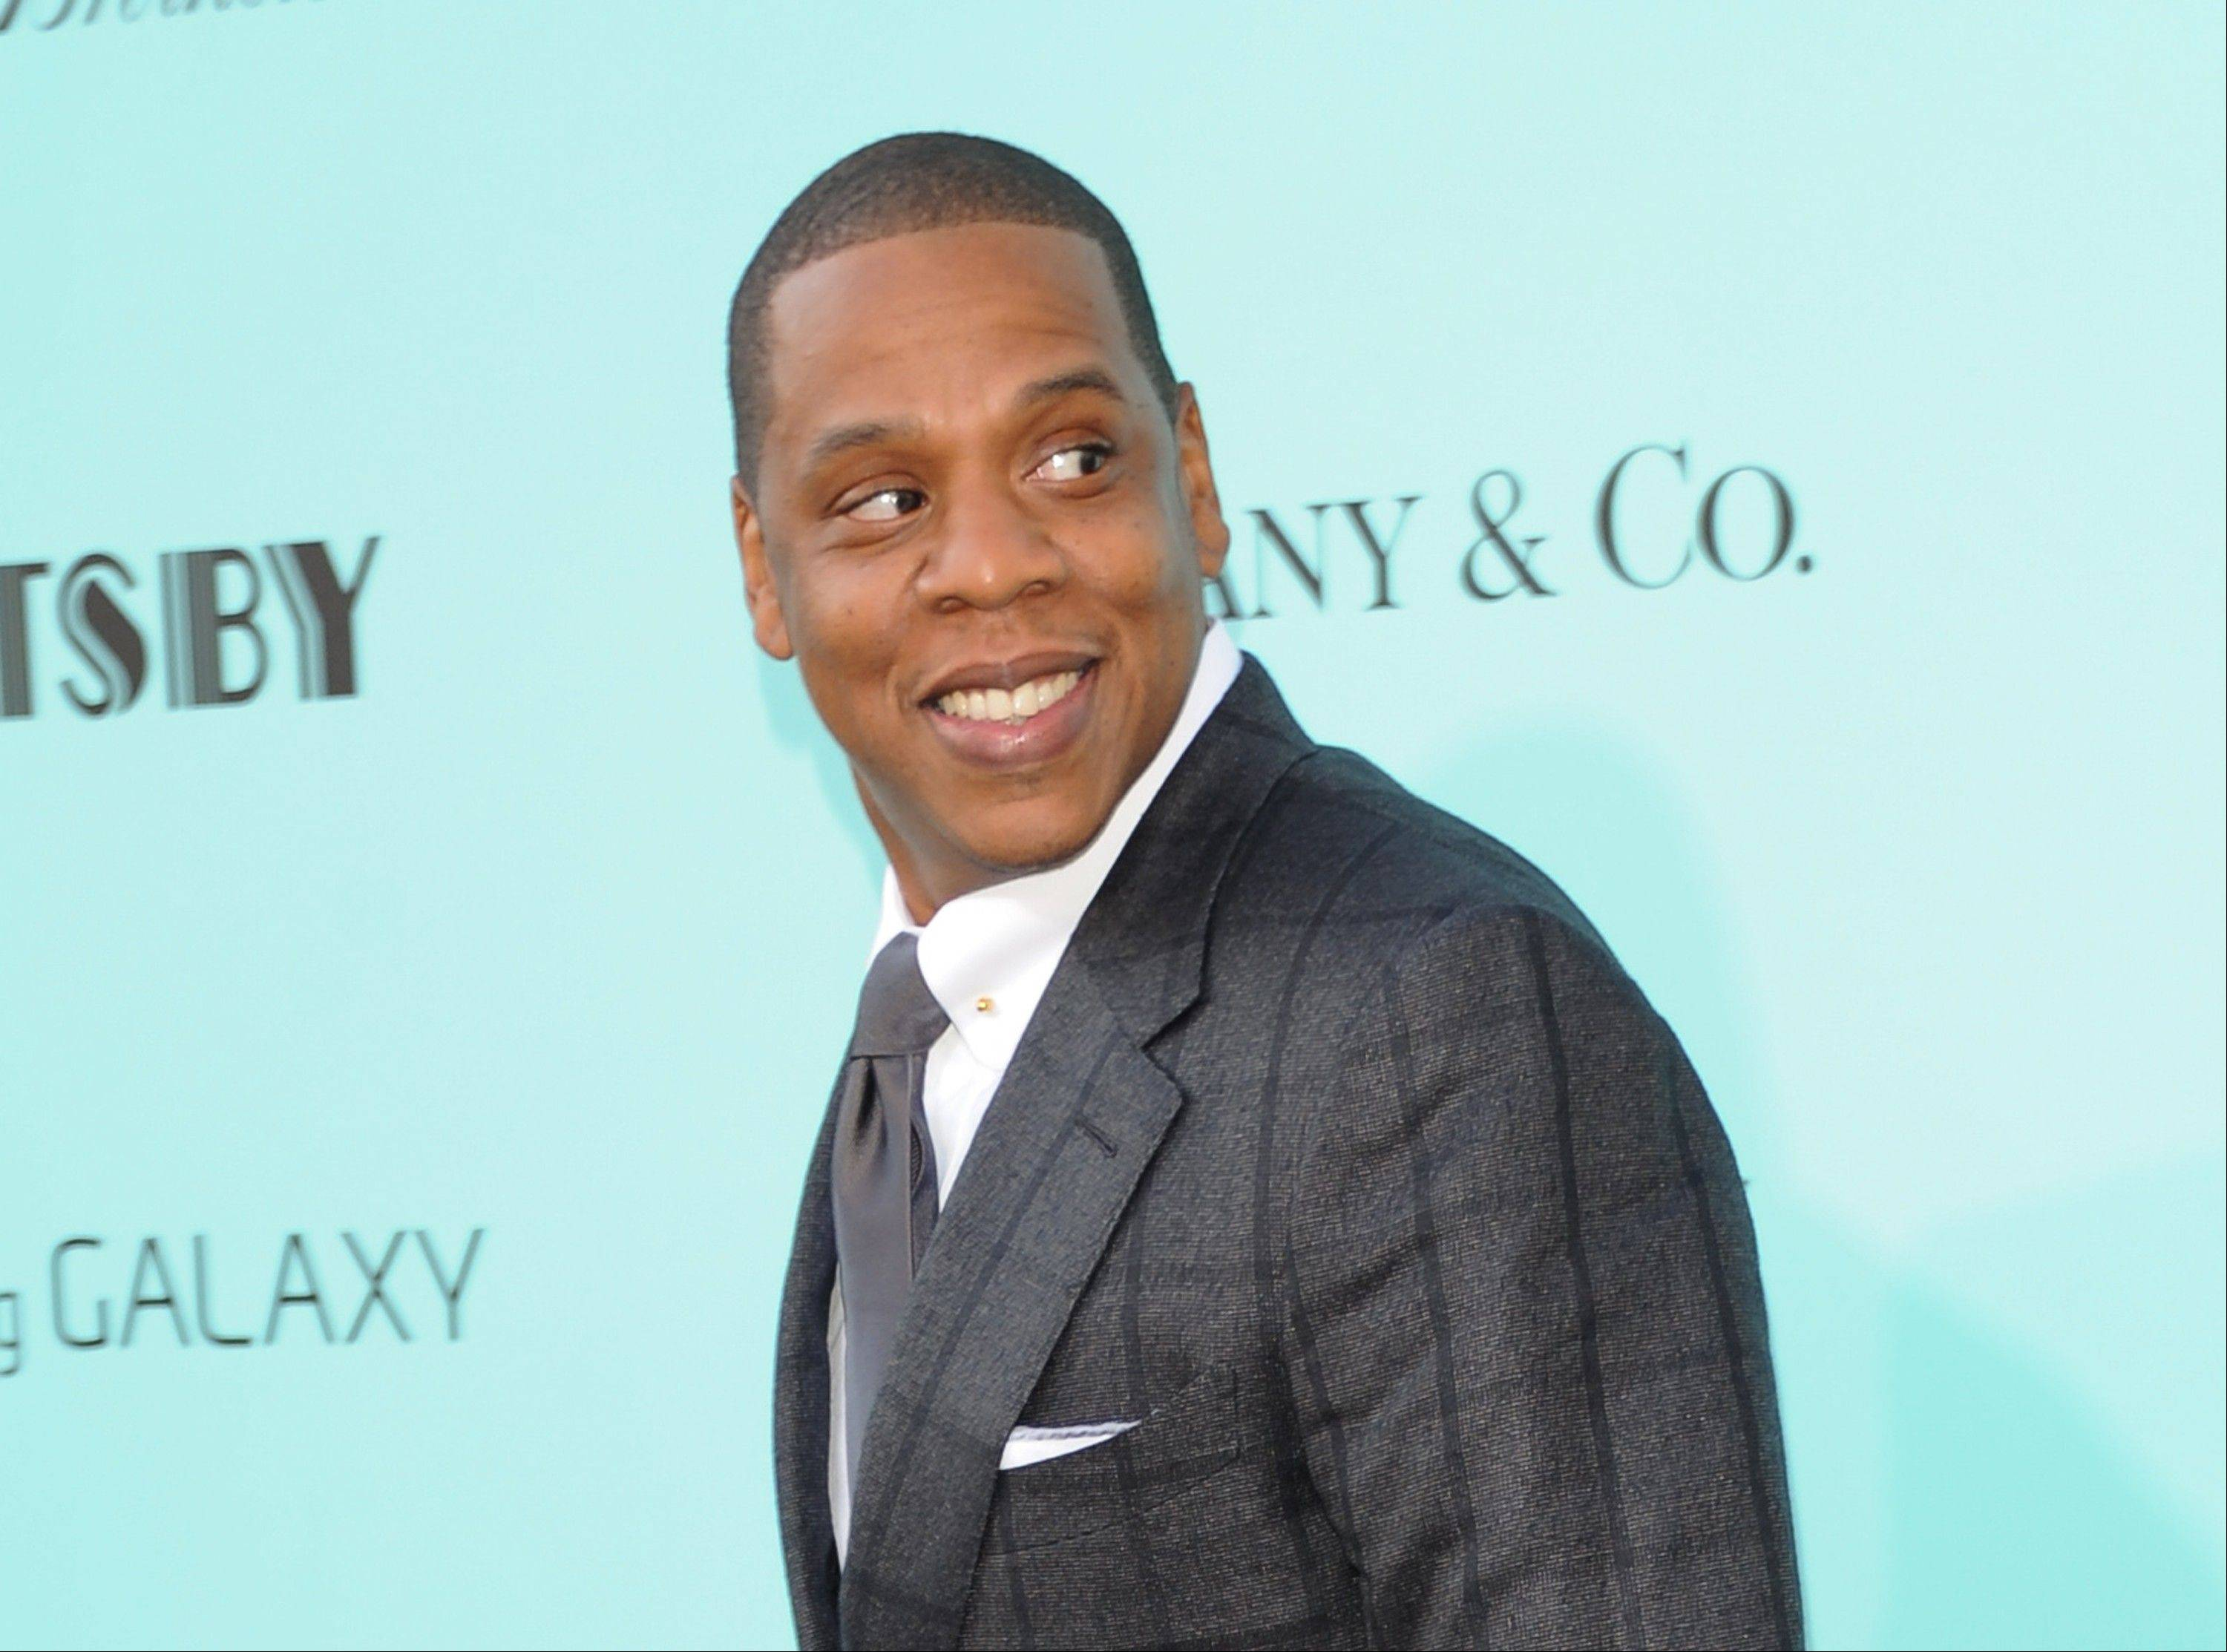 Jay-Z is teaming up with Samsung to release his new album, unveiling a three-minute commercial during the NBA Finals and announcing a deal that will give the music to 1 million users of Galaxy mobile phones. The new album, called �Magna Carta Holy Grail,� will be free for the first 1 million android phone owners who download an app for the album.